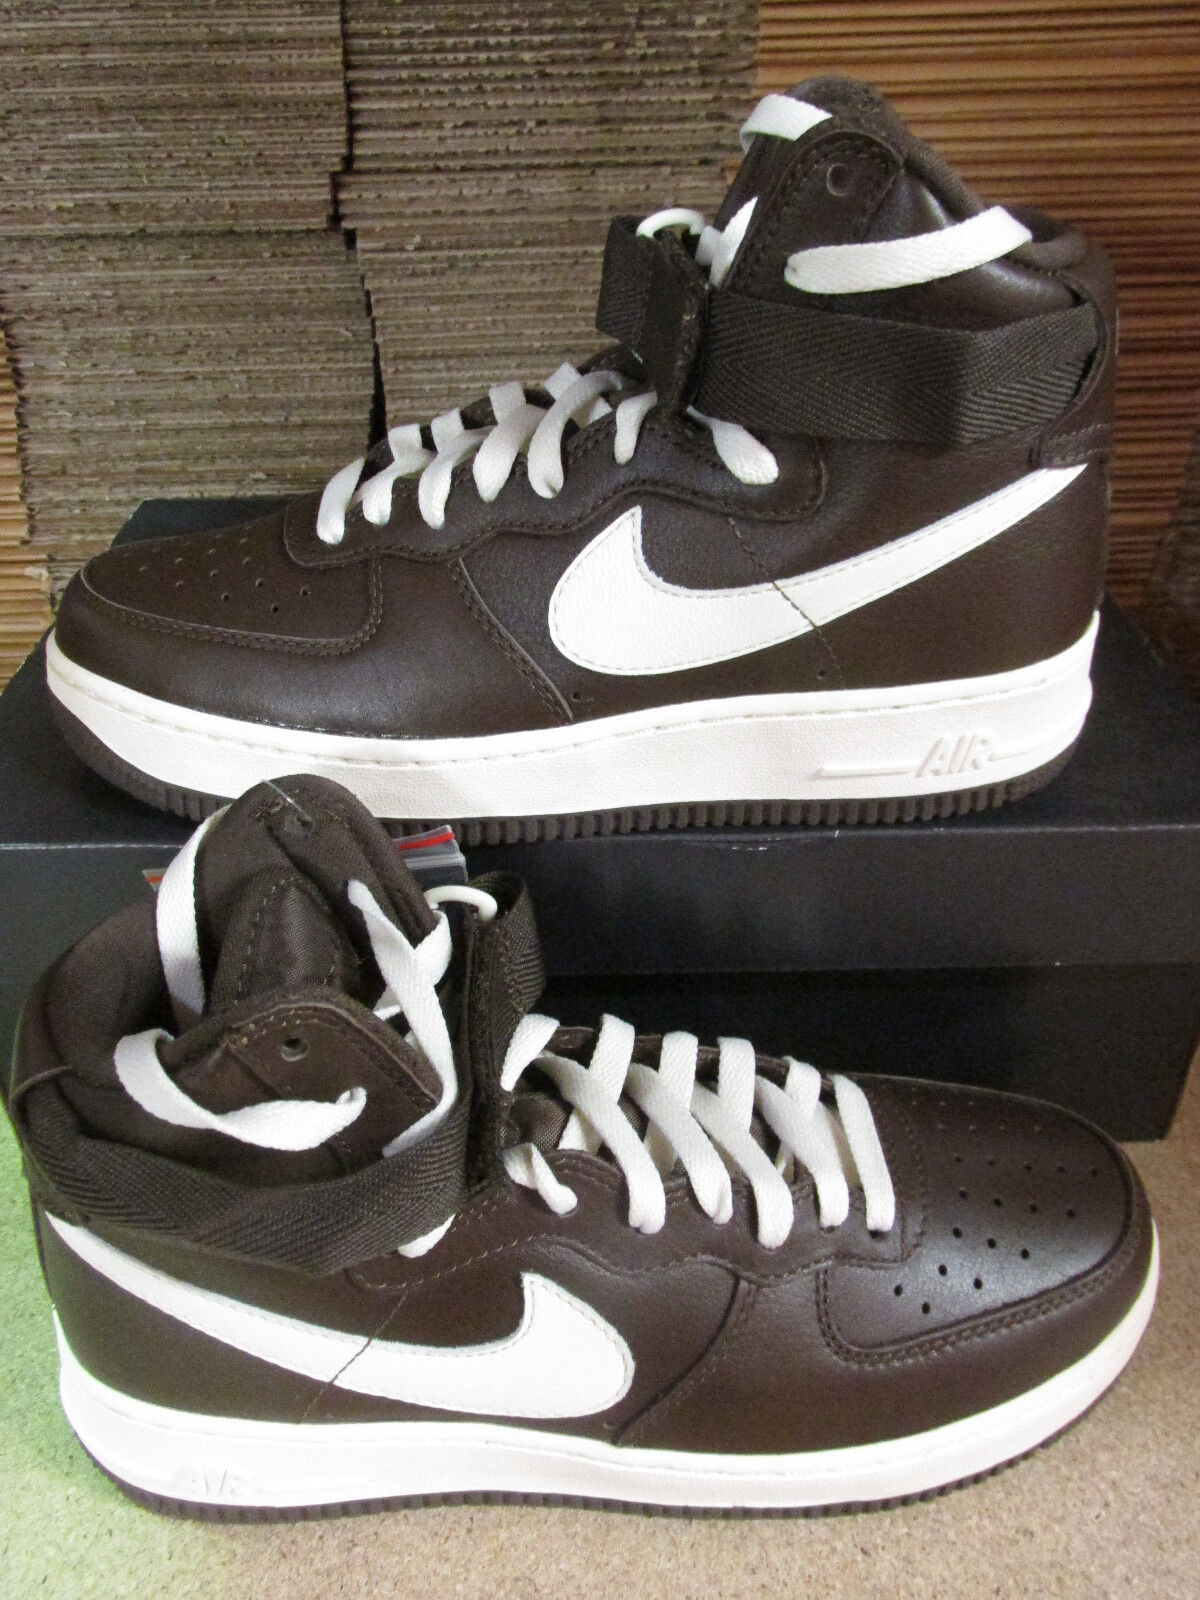 nike air force 1 hi retro QS mens hi top trainers 743546 200 sneakers shoes